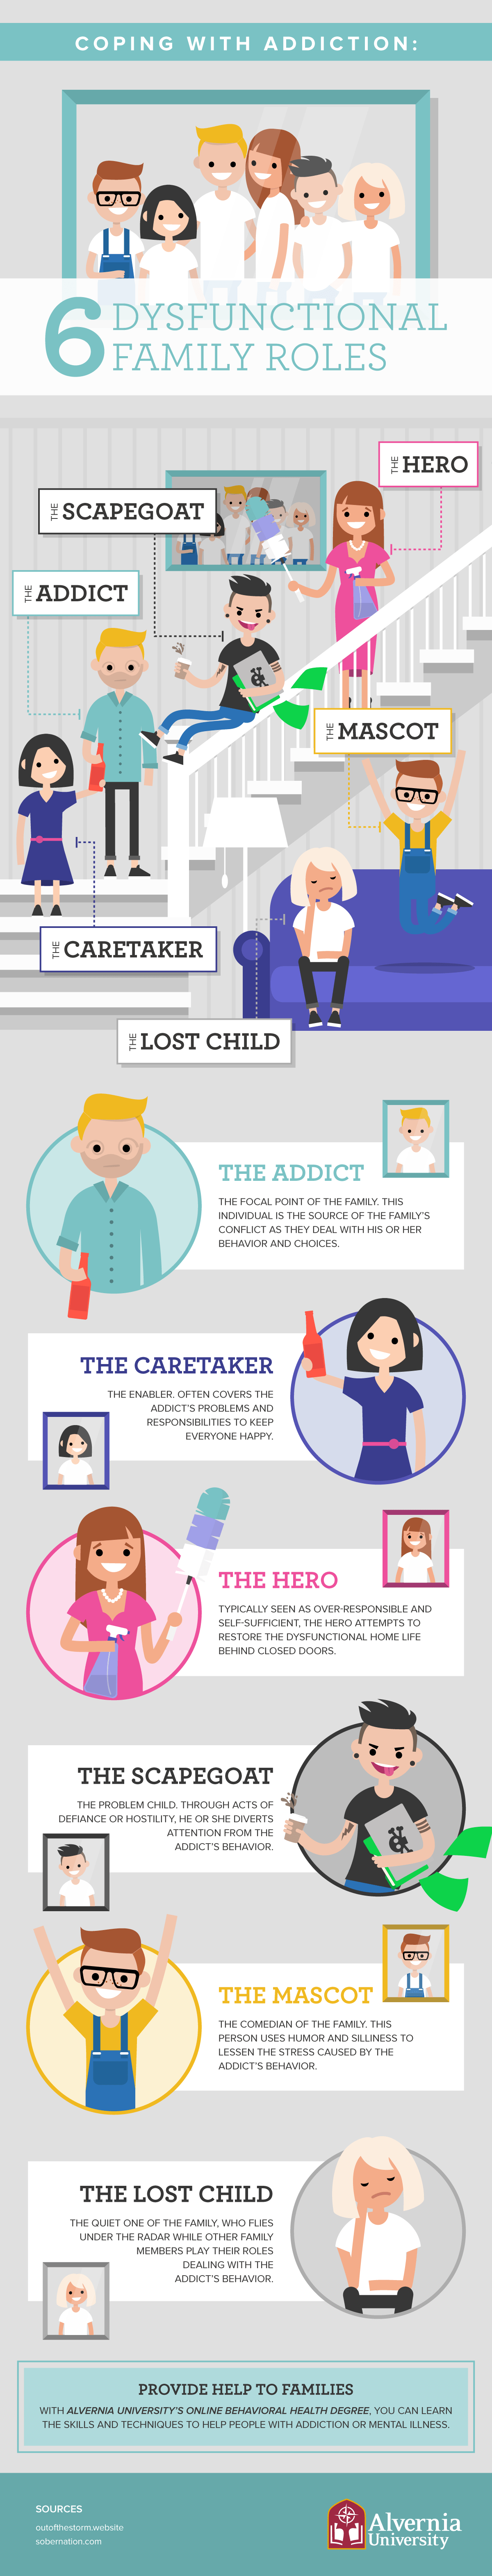 Coping With Addiction 6 Dysfunctional Family Roles